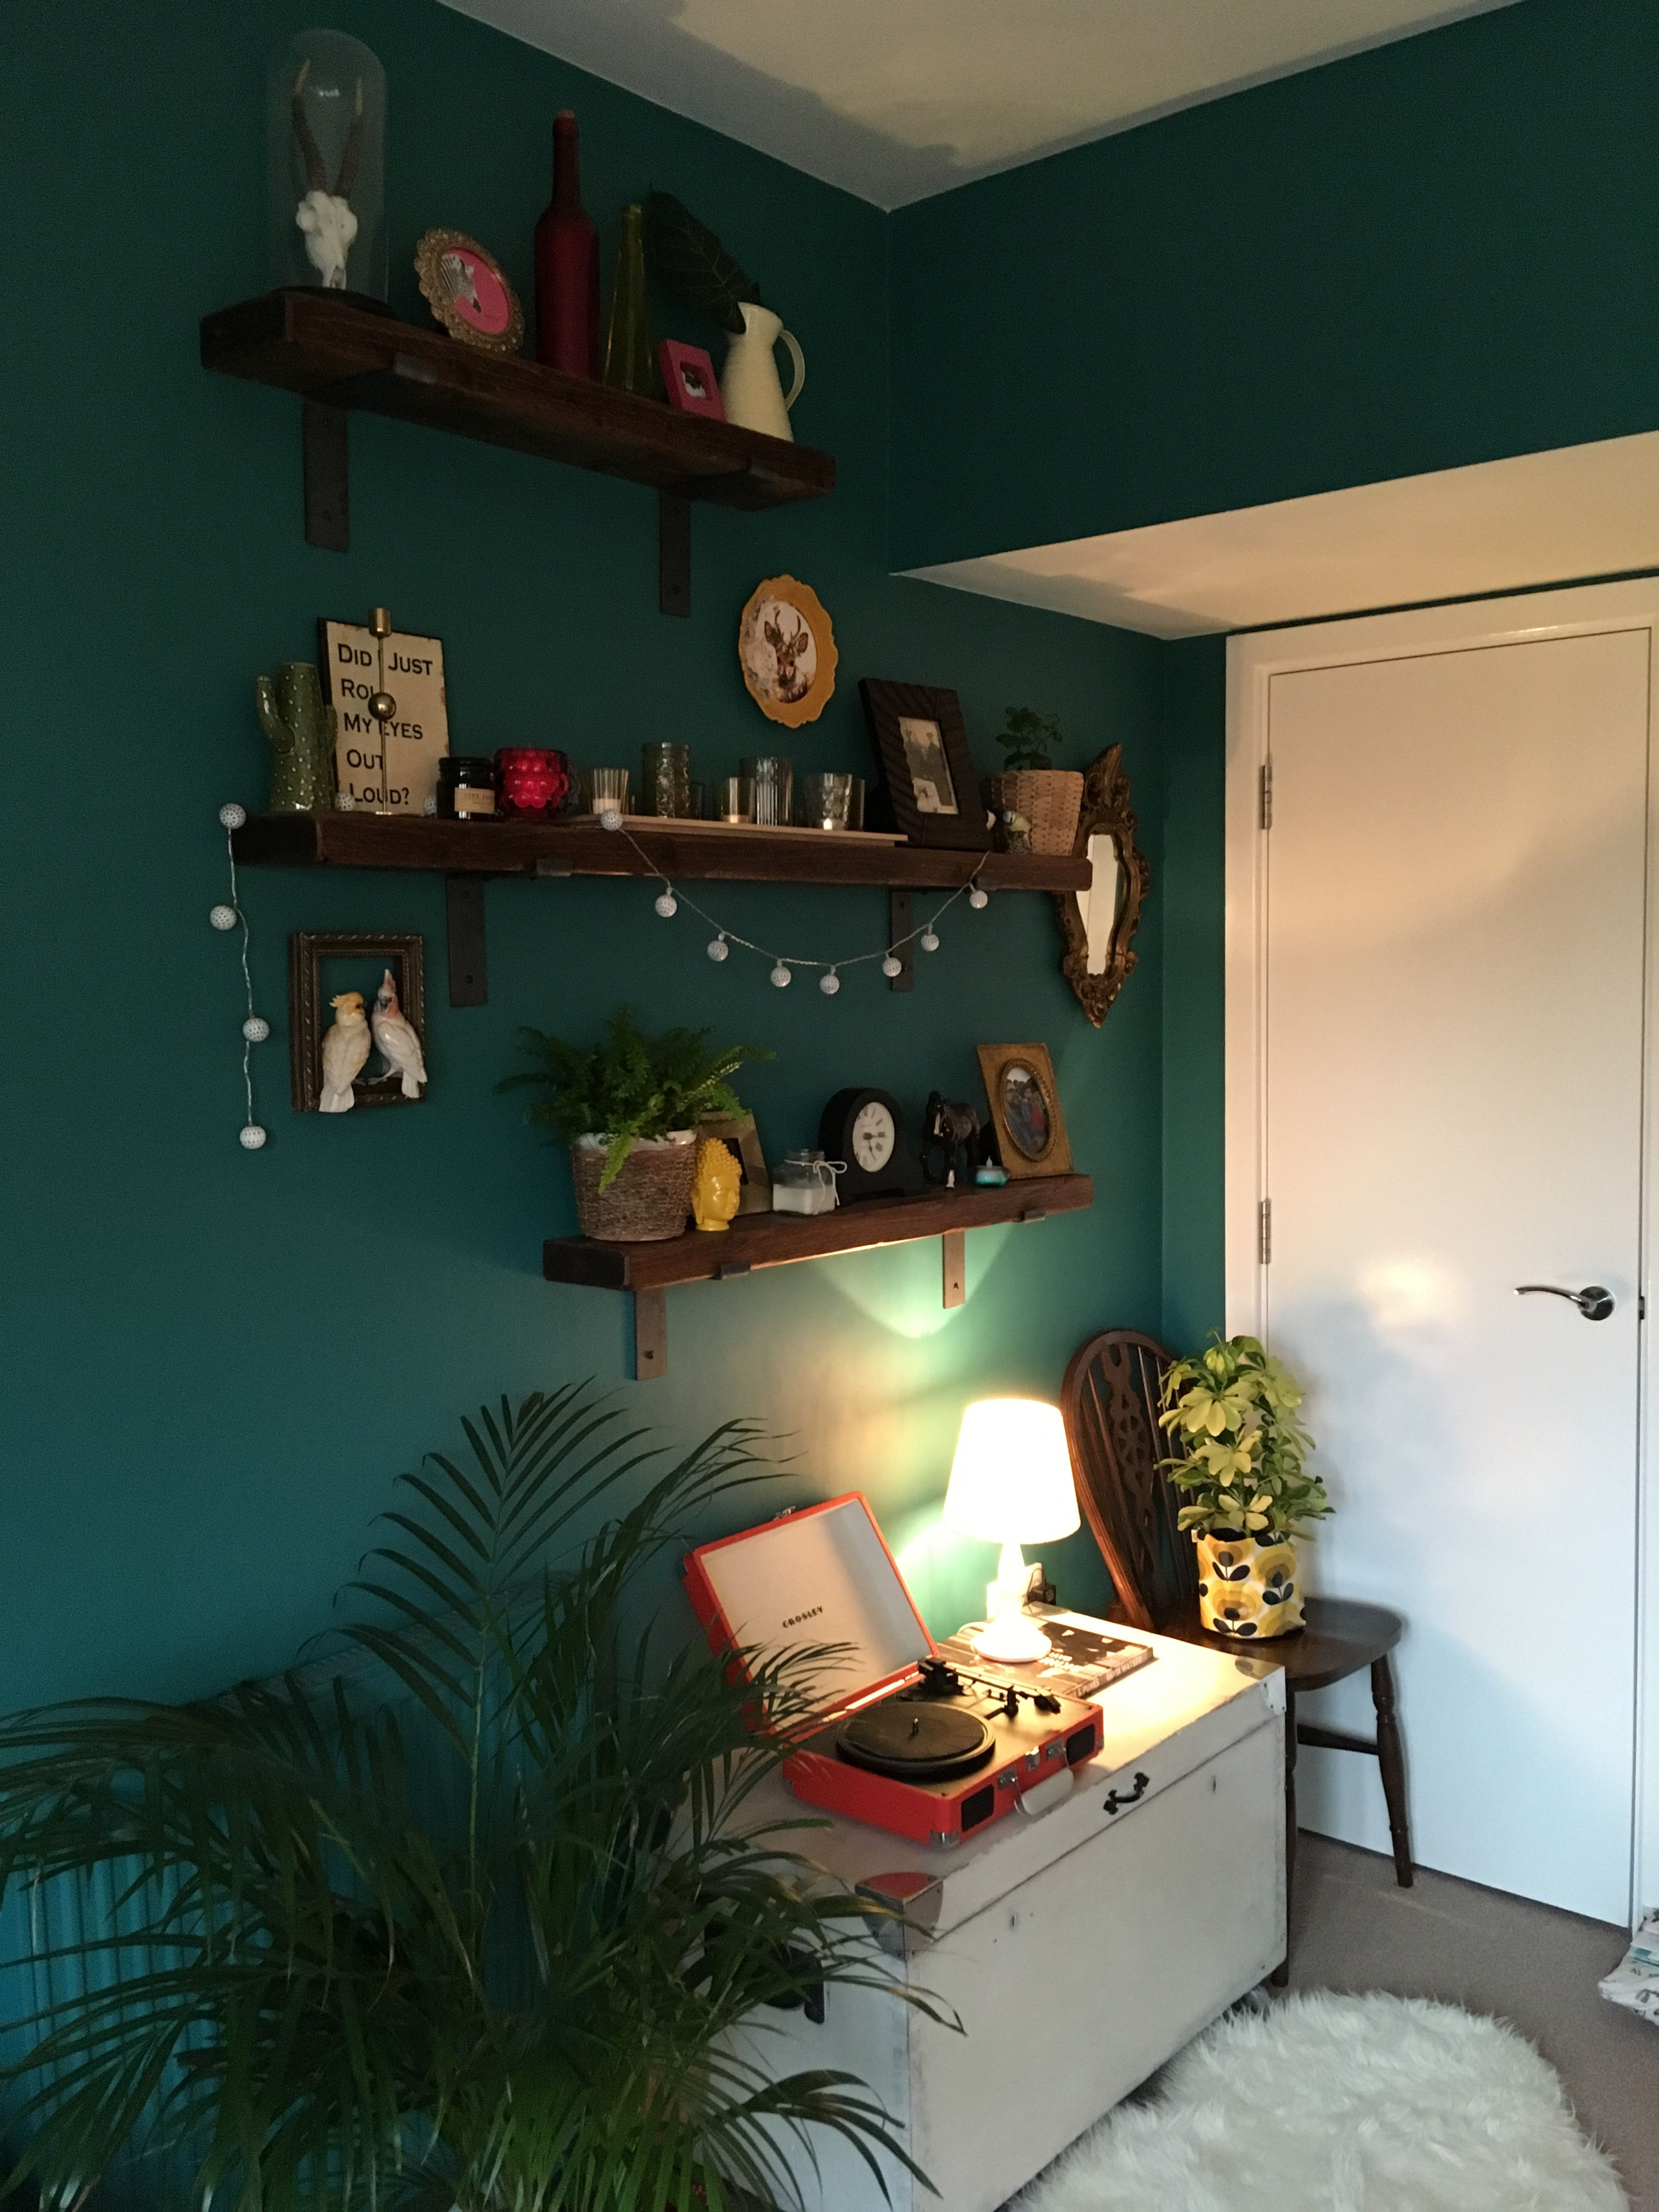 Proud Peacock By Dulux Painted Wall Such A Beautiful And Warming Colour Music Room Decor Interior Design Living Room Peacock Living Room #peacock #living #room #ideas